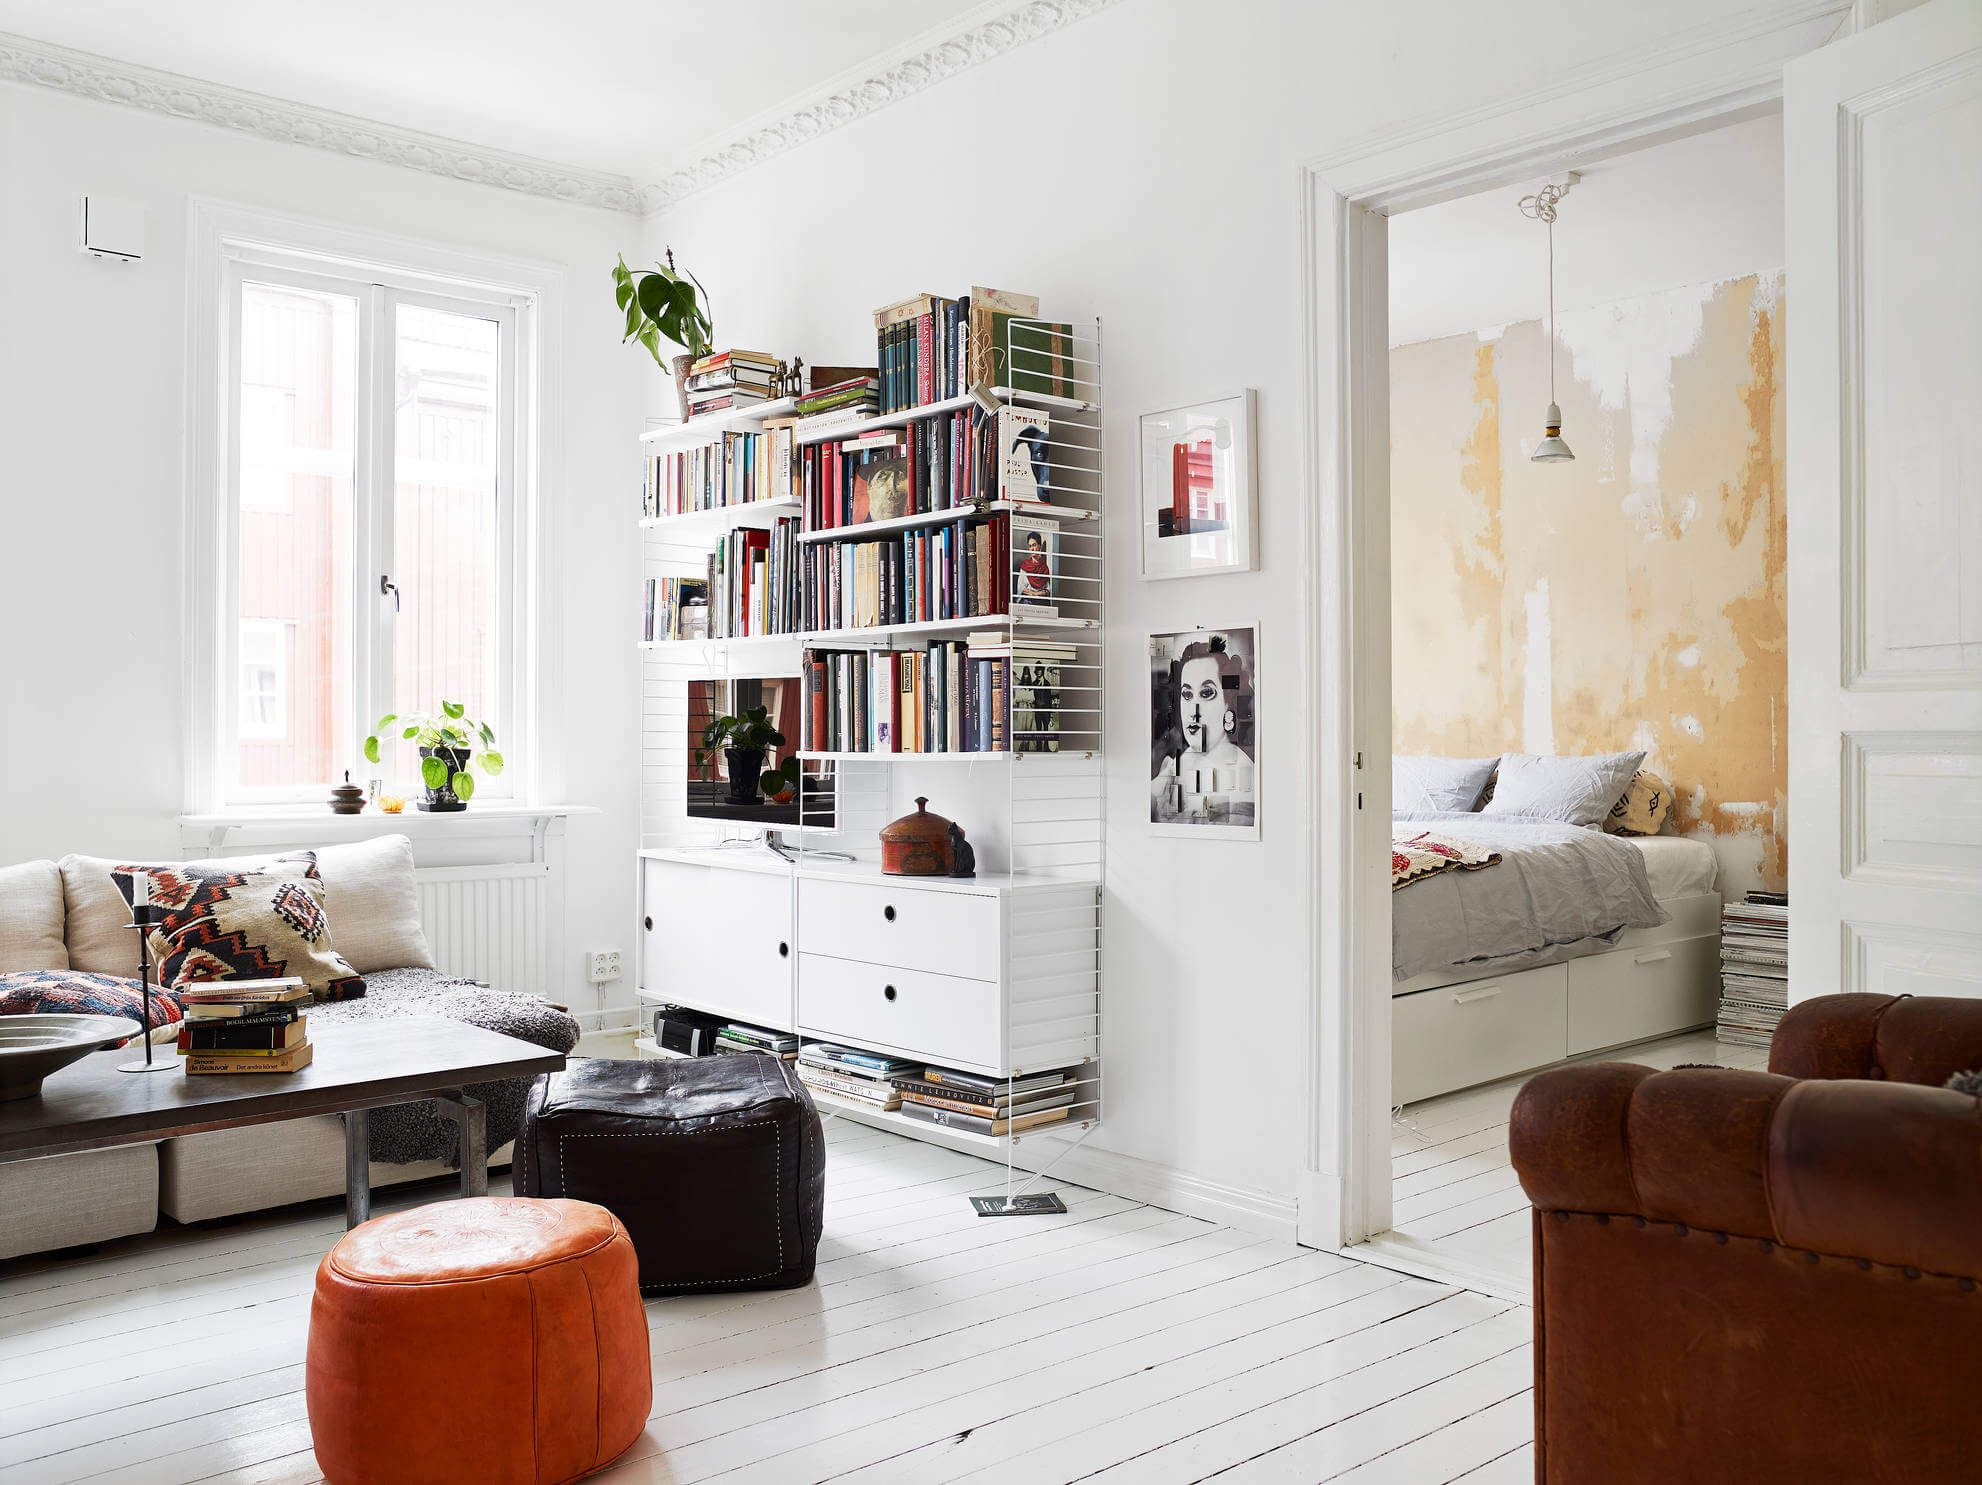 basic ideas about small apartment interior design small on stunning minimalist apartment décor ideas home decor for your small apartment id=47375